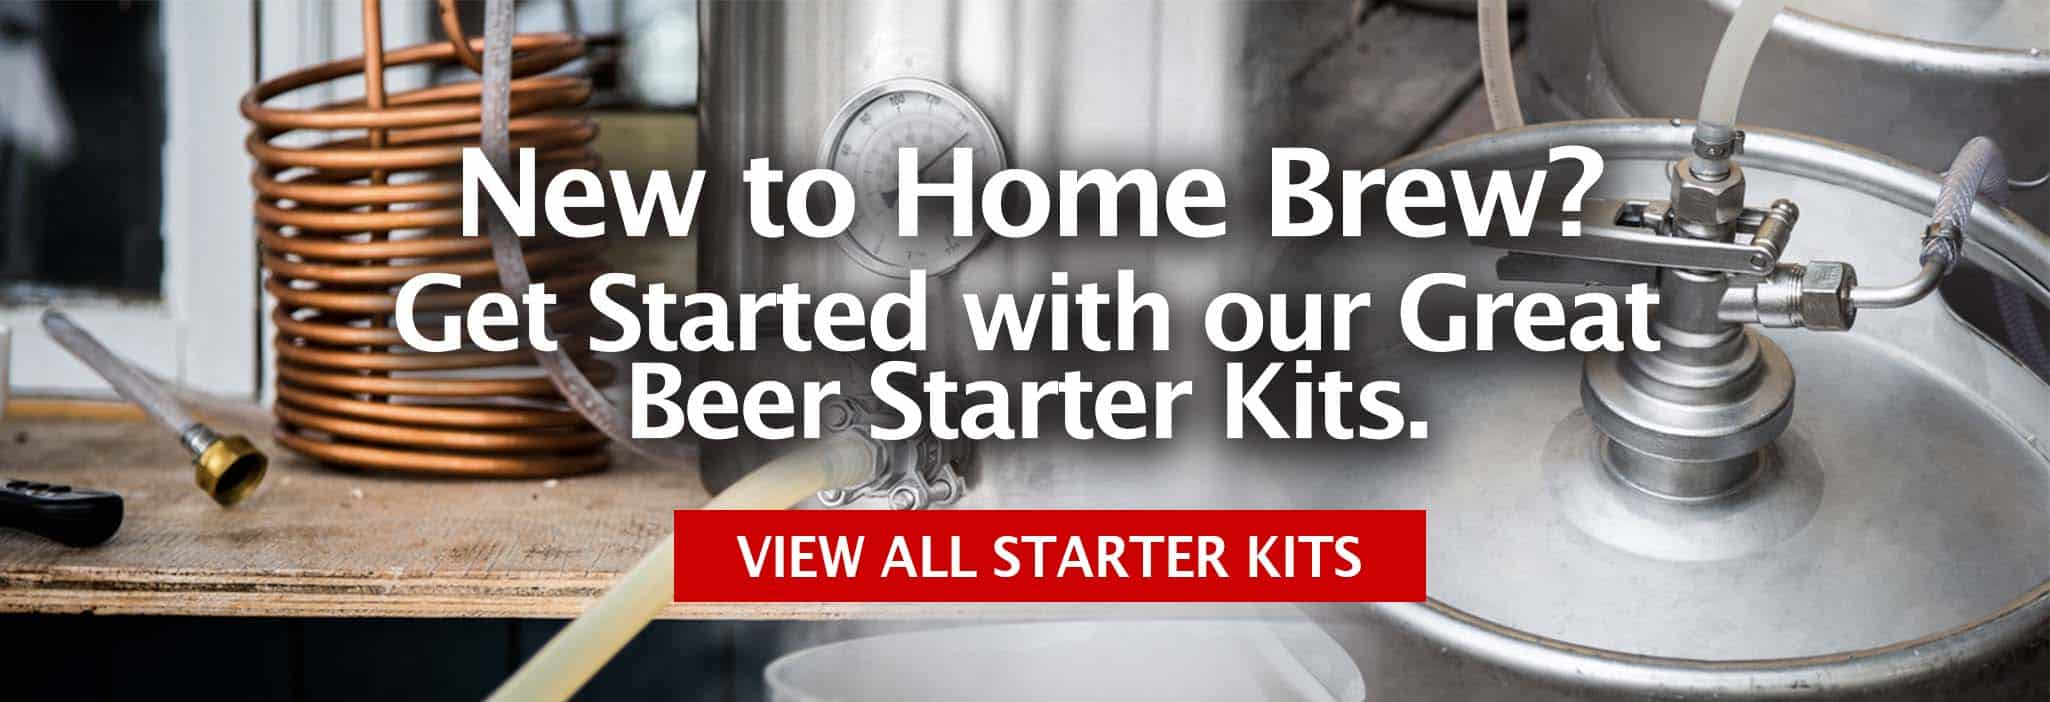 Beer Making Starter Kits